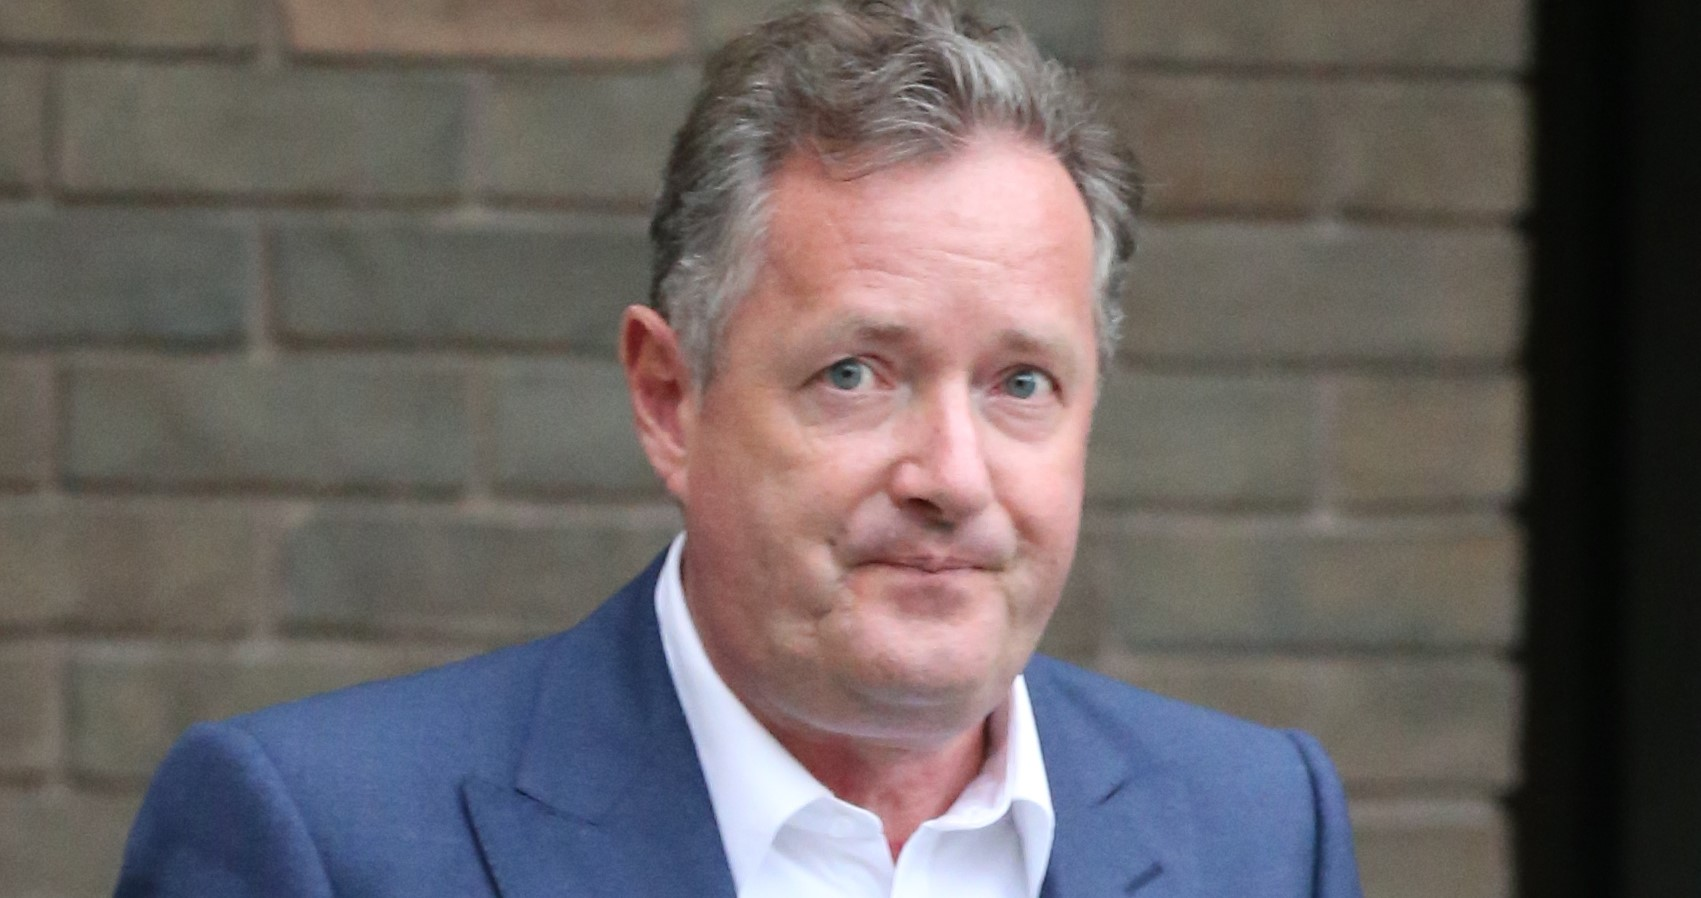 Piers Morgan reveals 'discomforting' evacuation alerts as wildfires rage near his LA home